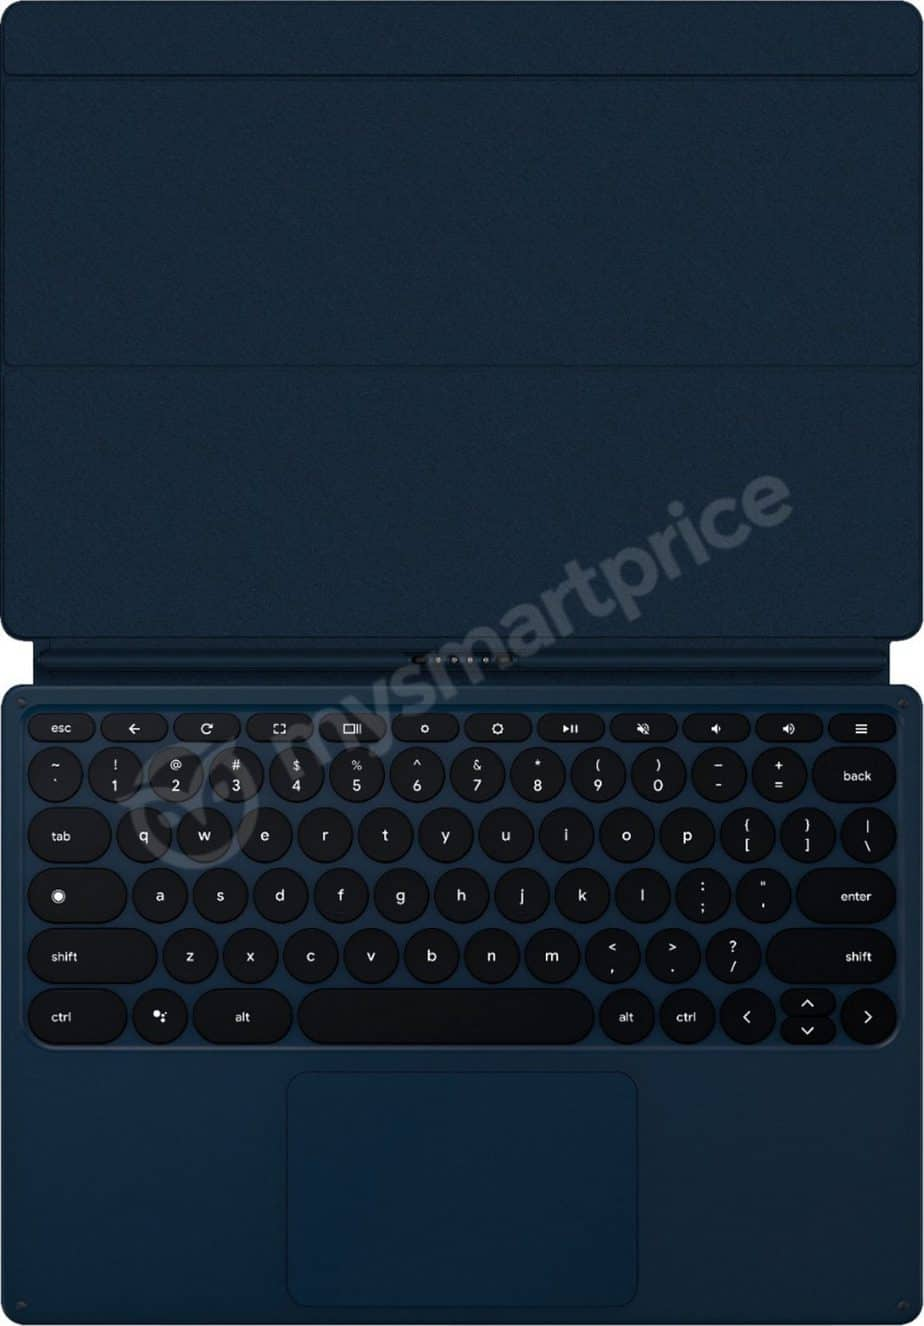 The Pixel Slate keyboard will be detachable and connect via a pogo connector.